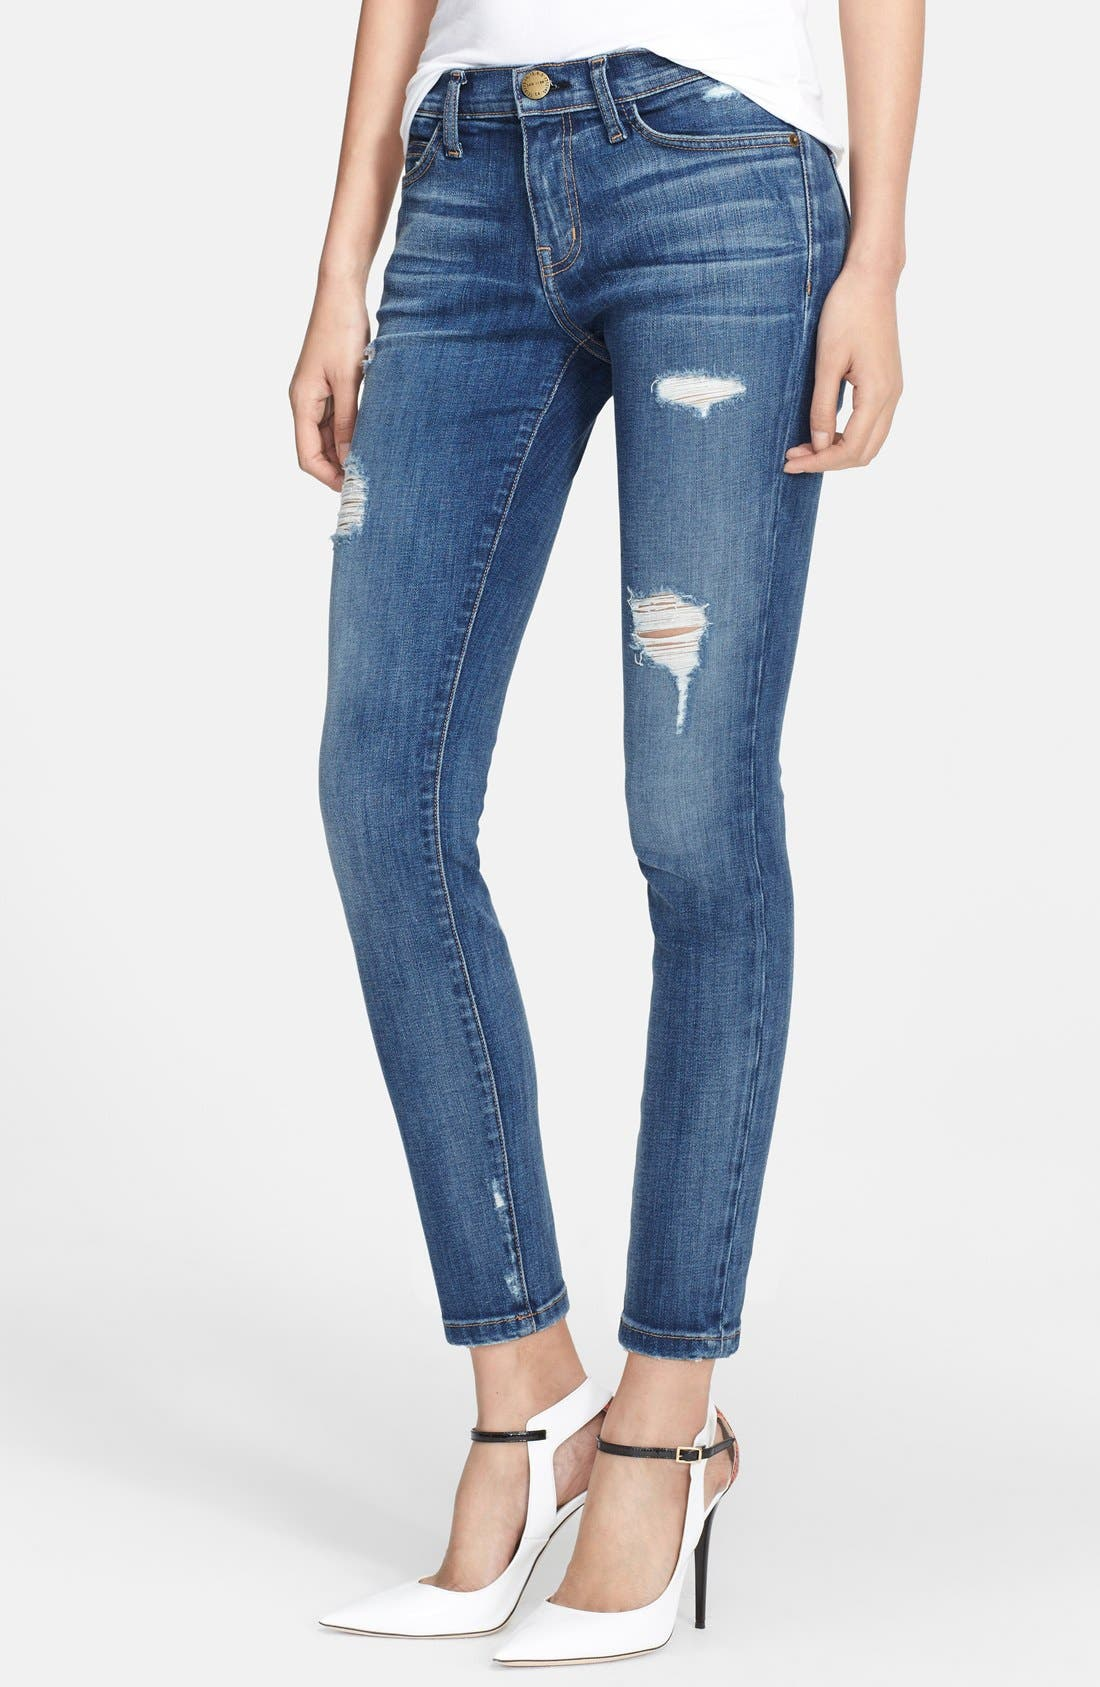 Alternate Image 1 Selected - Current/Elliott 'The Stiletto' Destroyed Skinny Jeans (Niagara Destroy) (Nordstrom Exclusive)